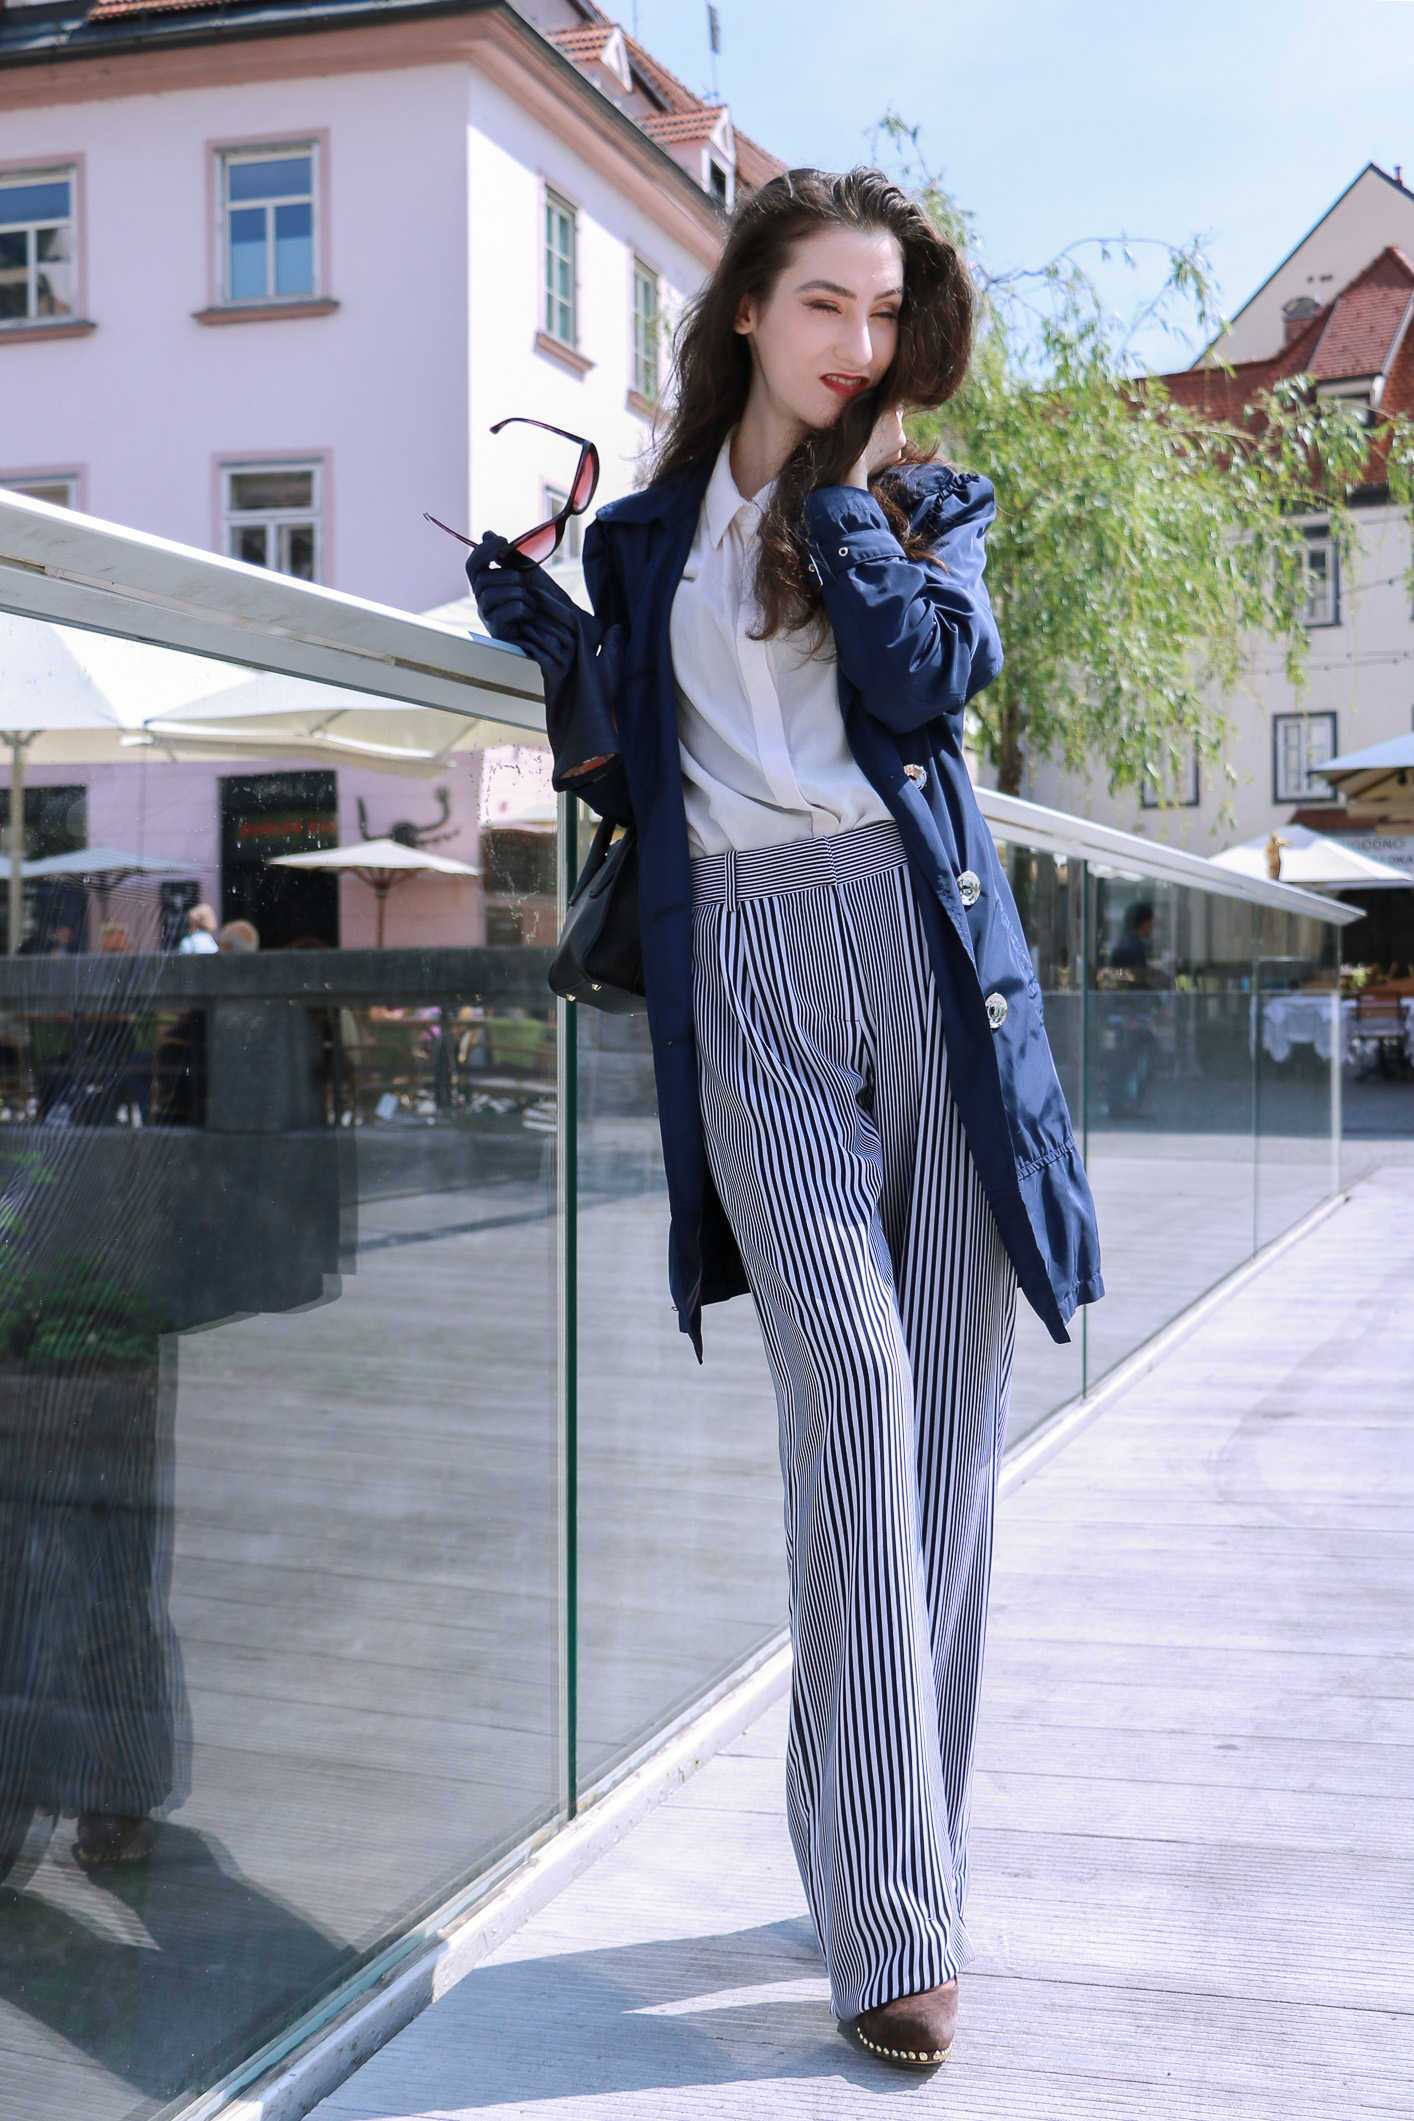 Fashion blogger Veronika Lipar of Brunette From Wall Street sharing how to style wide-leg striped trousers for a chic style this spring